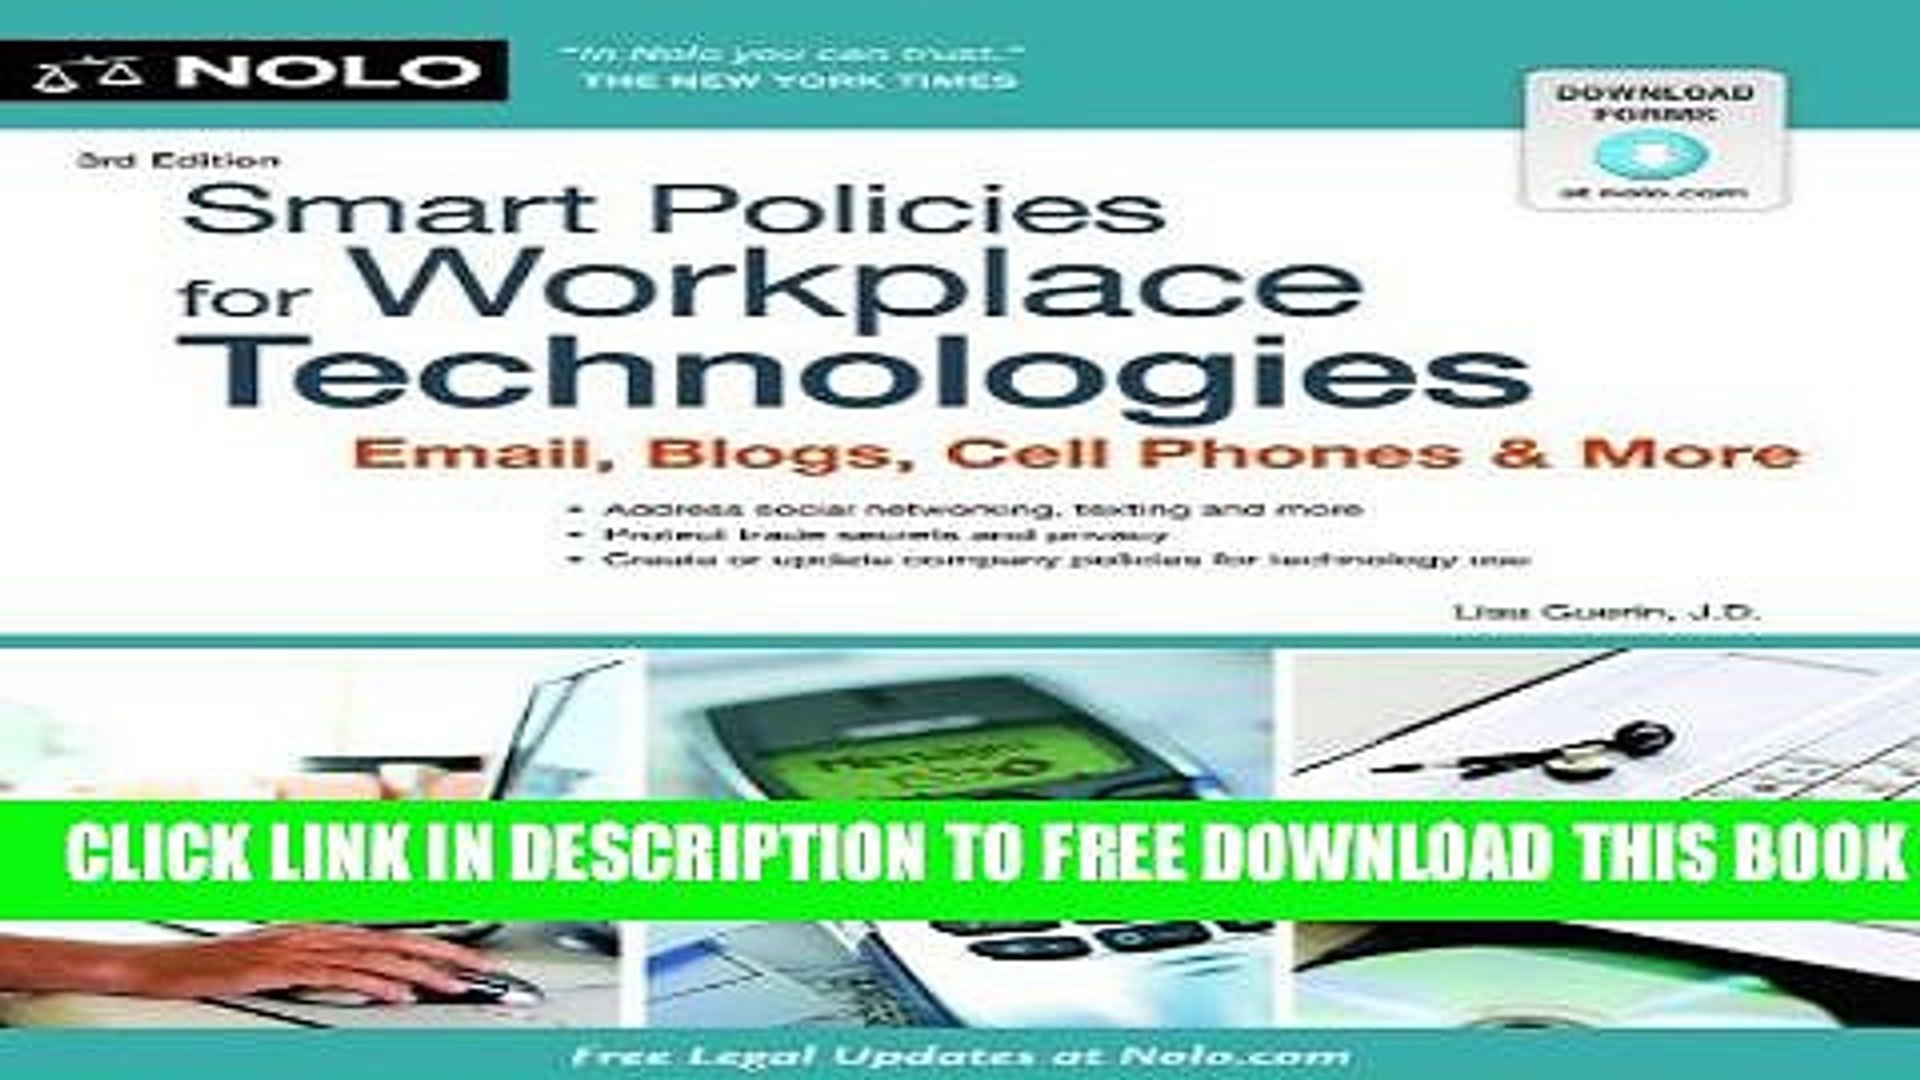 New Book Smart Policies for Workplace Technology: Email, Blogs, Cell Phones   More